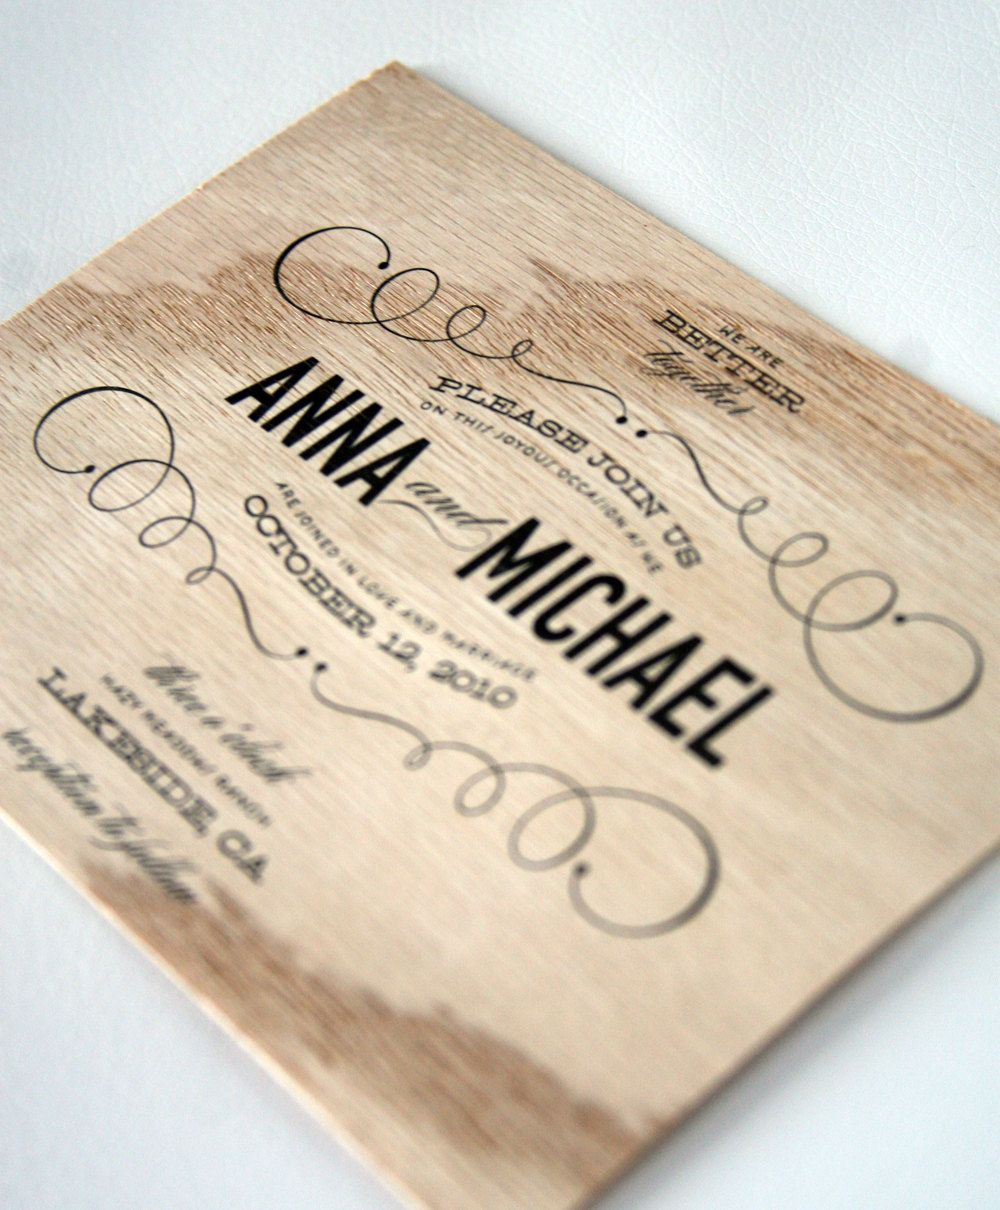 Wooden invites and menusapparently it takes fewer trees than